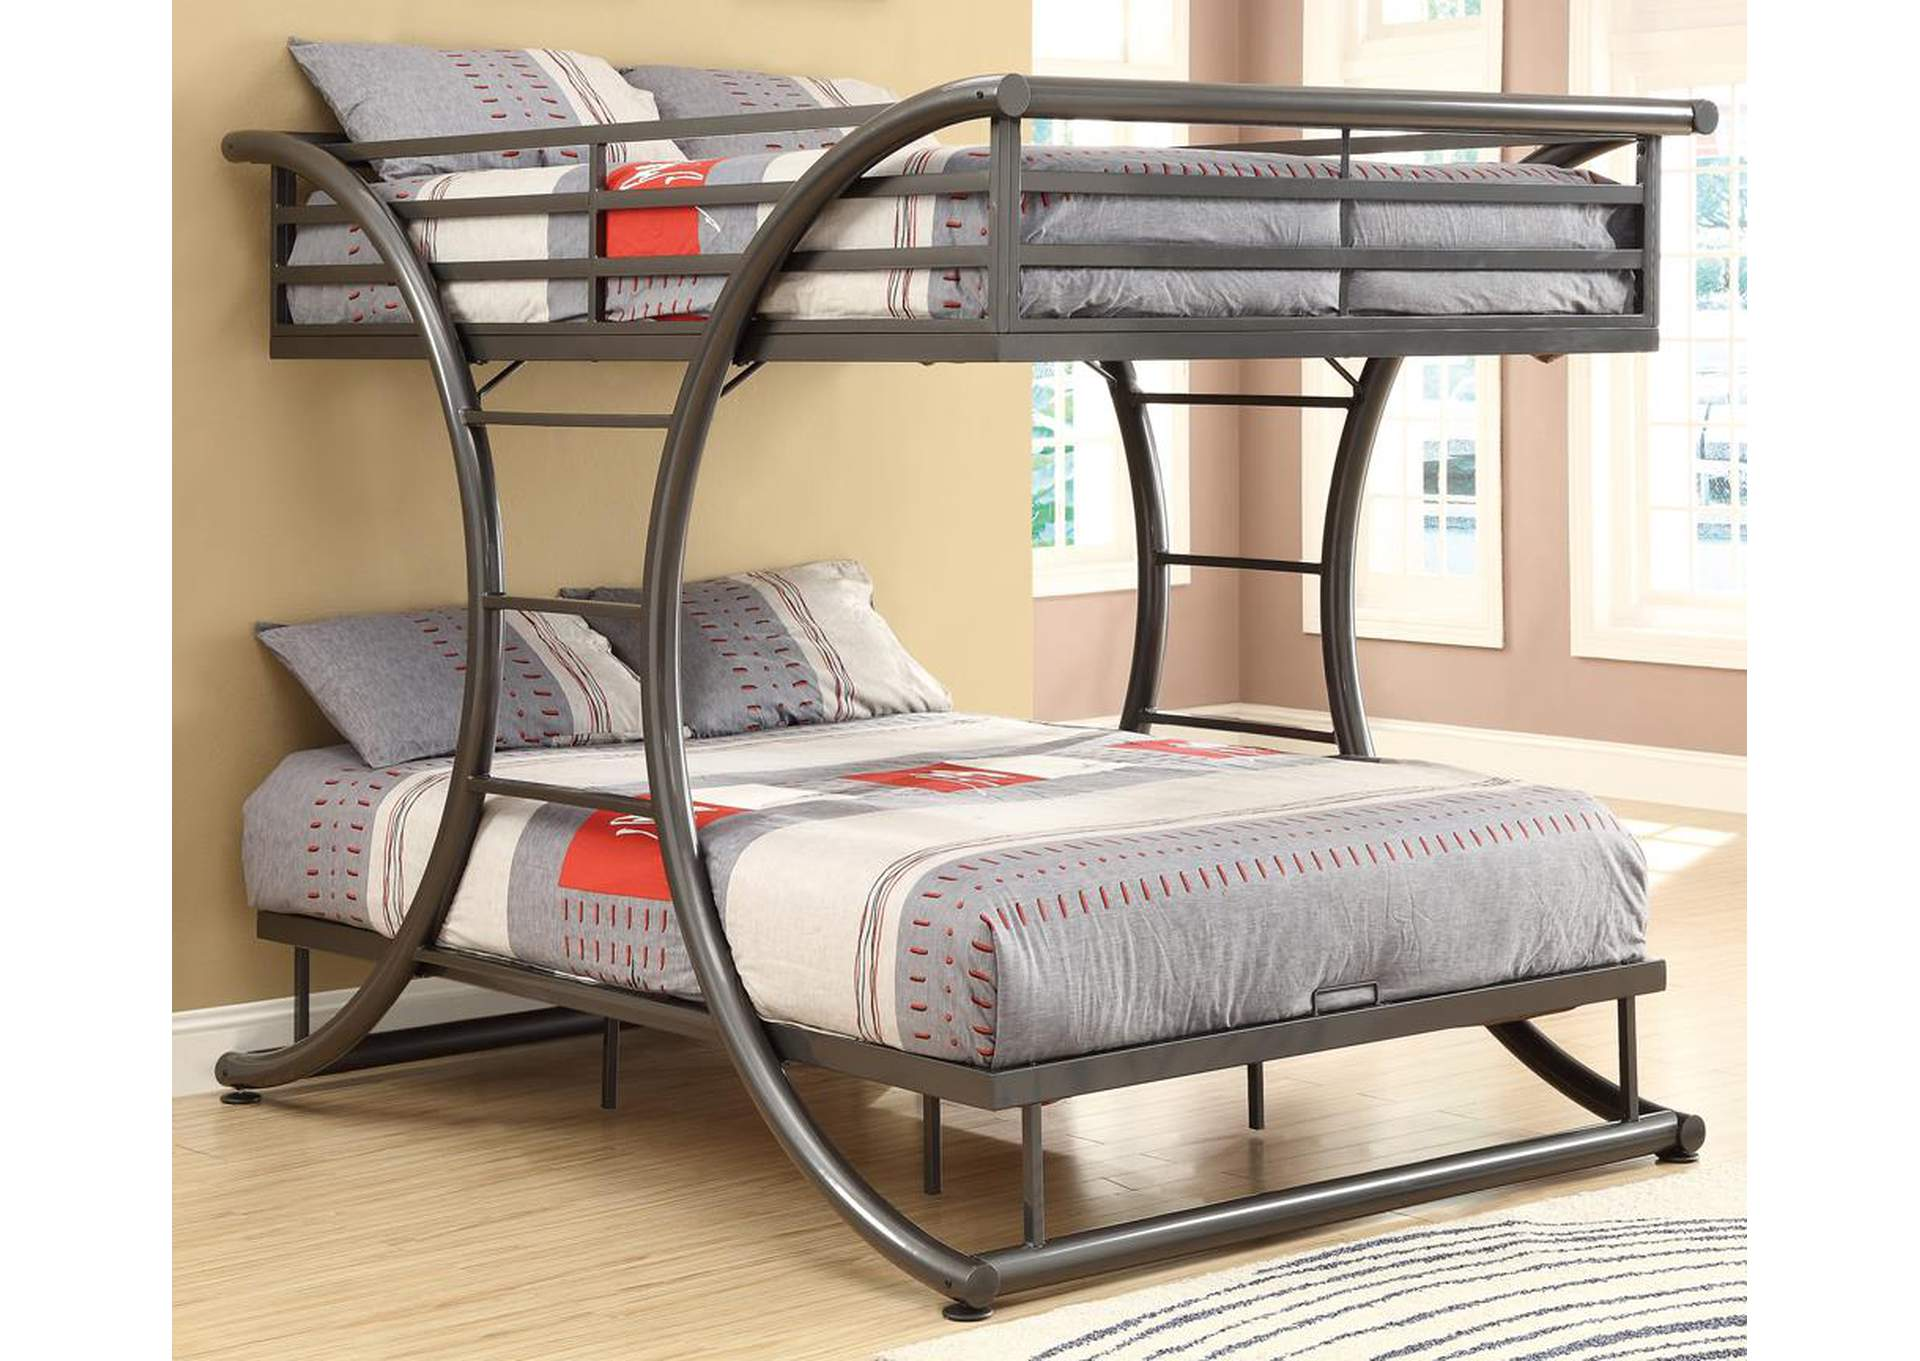 Gunmetal Full/Full Bunk Bed,ABF Coaster Furniture